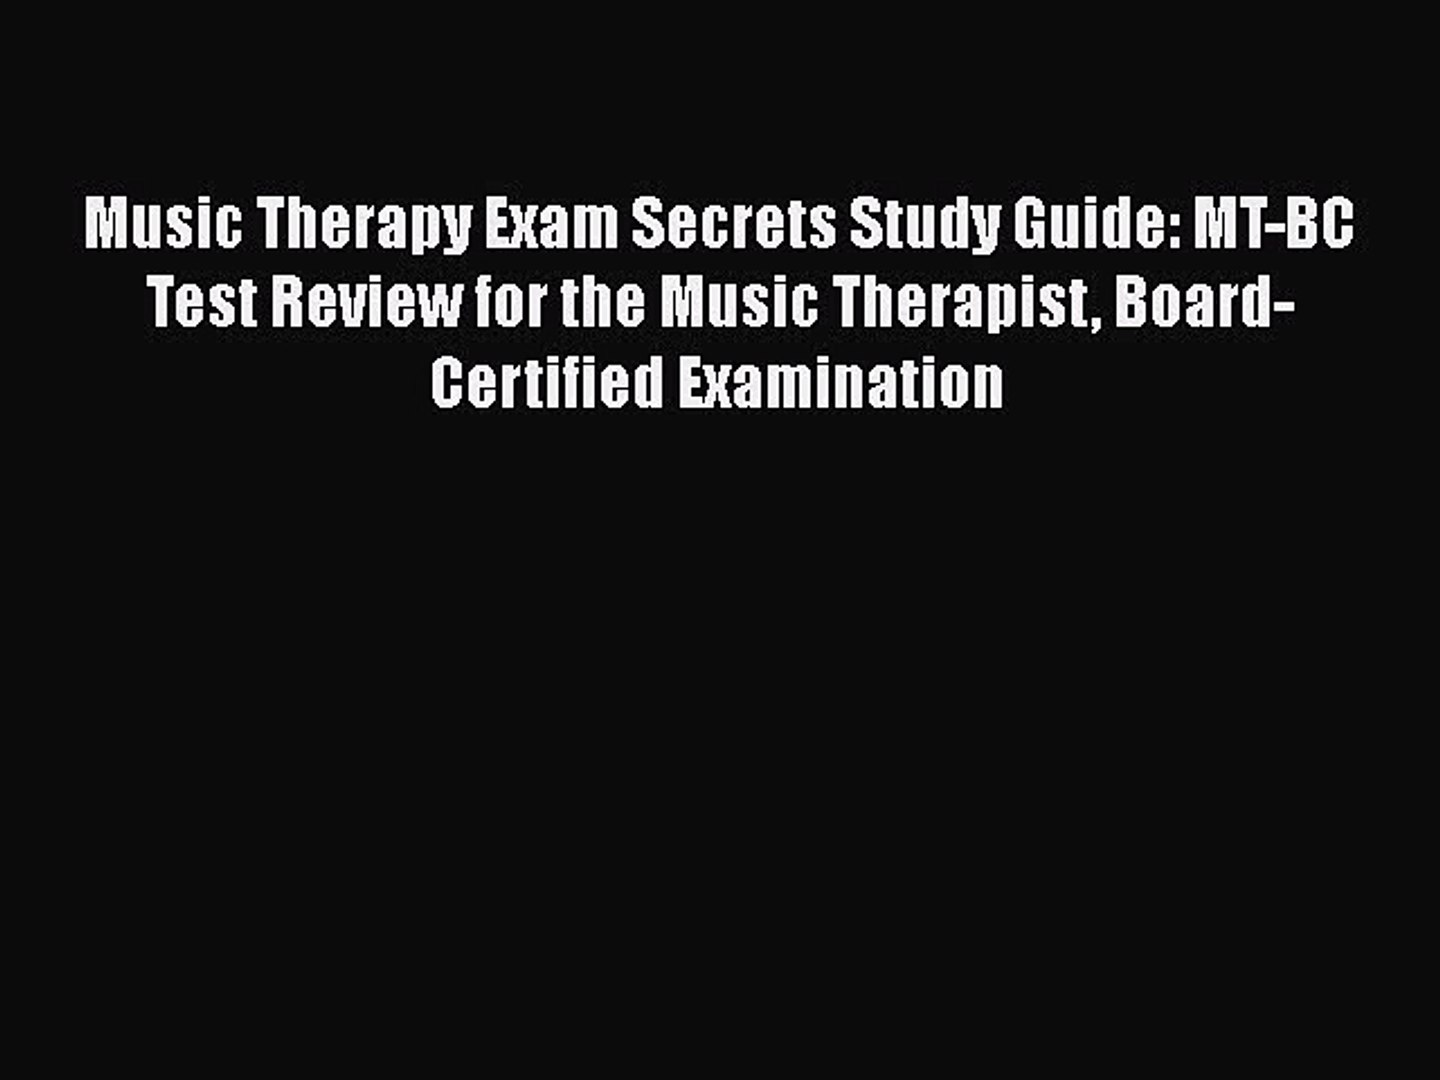 FREE DOWNLOAD Music Therapy Exam Secrets Study Guide: MT-BC Test Review for the Music Therapist